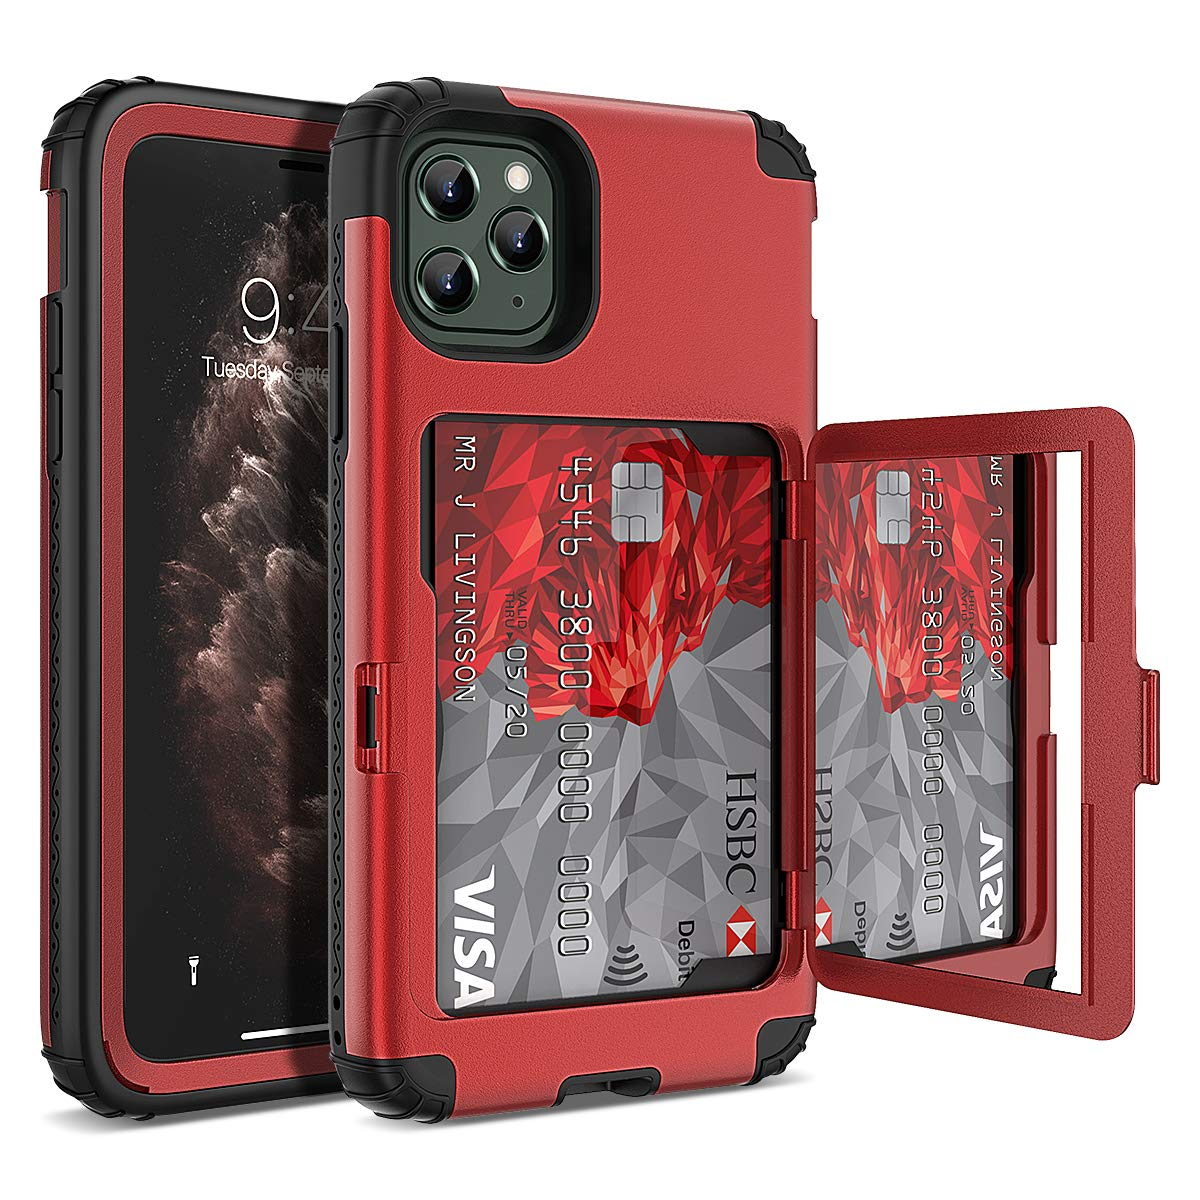 iPhone 11 Pro Max Wallet Case, WeLoveCase Defender Wallet Card Holder Cover with Hidden Mirror Three Layer Shockproof Heavy Duty Protection All-Round Armor Protective Case for iPhone 11 Pro Max Red